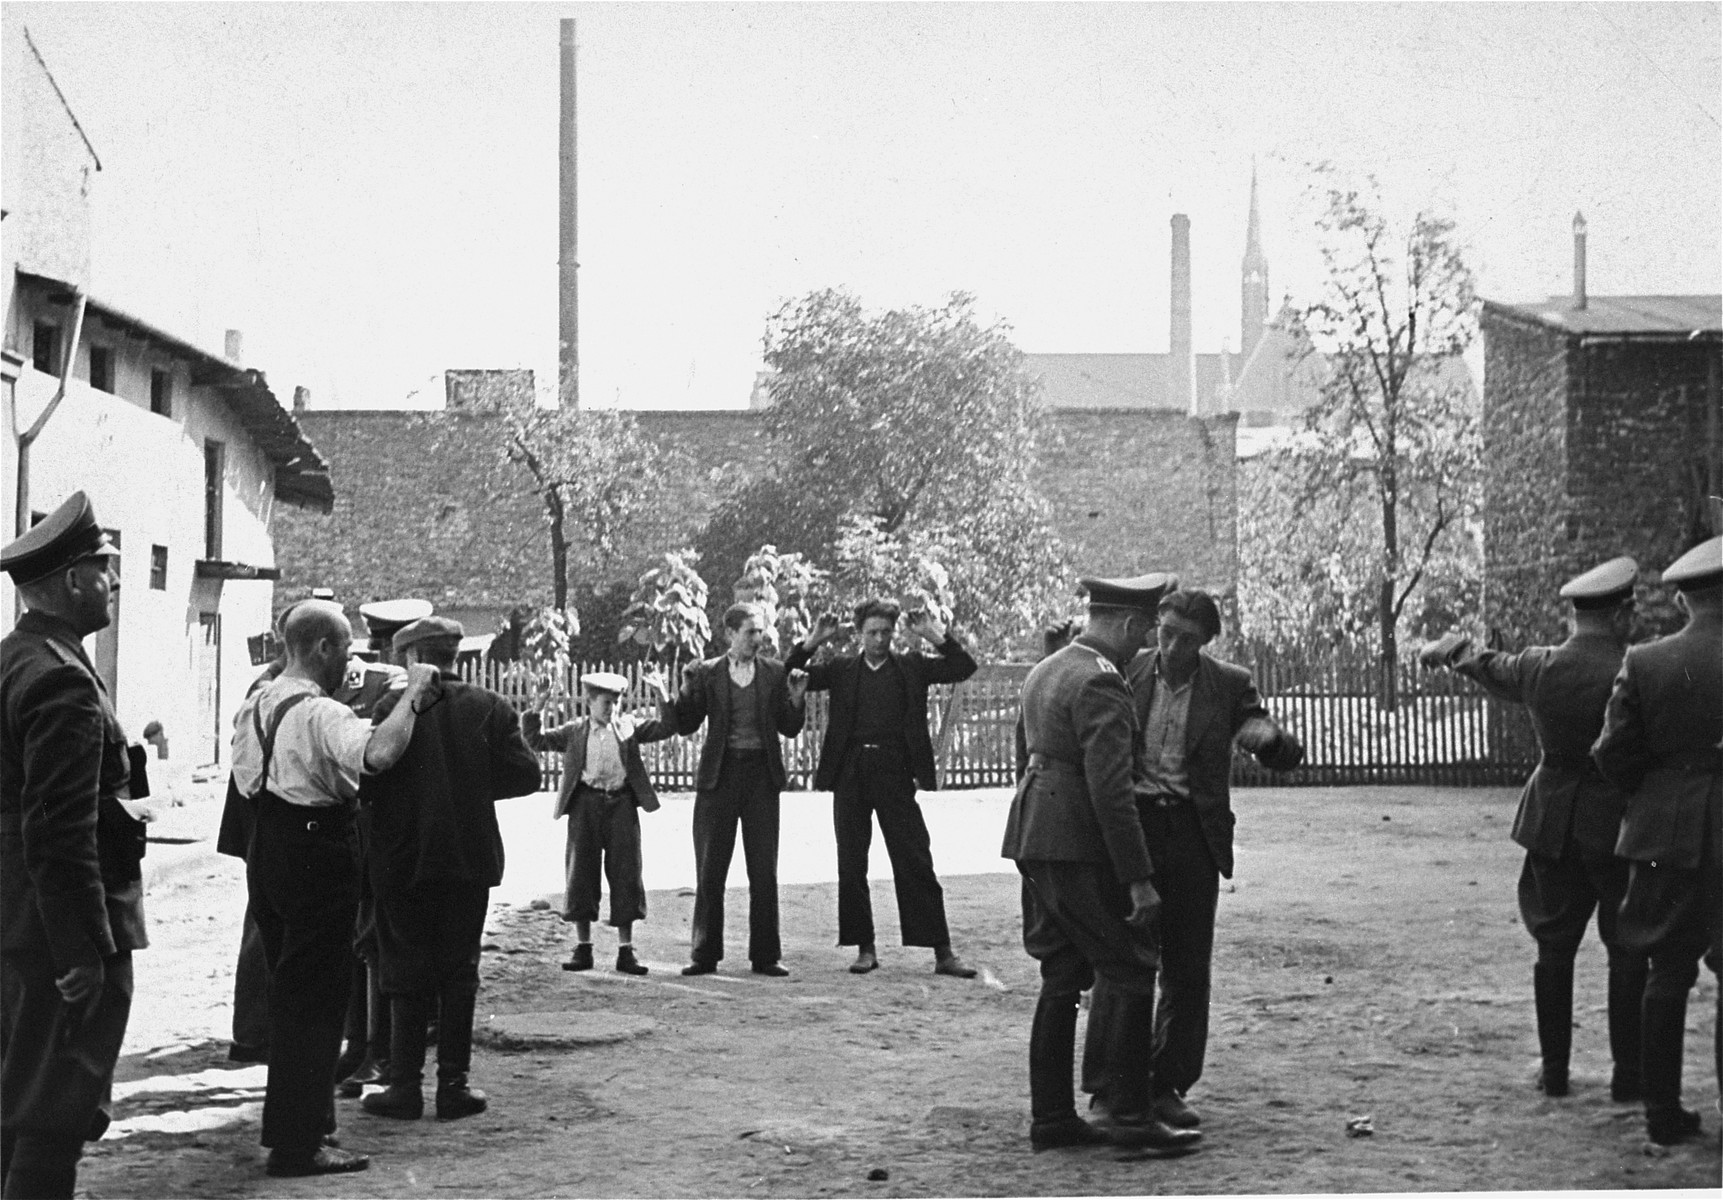 [Probably, SD officers questioning a group of Poles they have detained on the street.]   One of twenty-six images of Einsatzgruppen activities in Poland in 1939, found by Joseph Igra after the war, in a an album in an apartment in Sosnowiec.